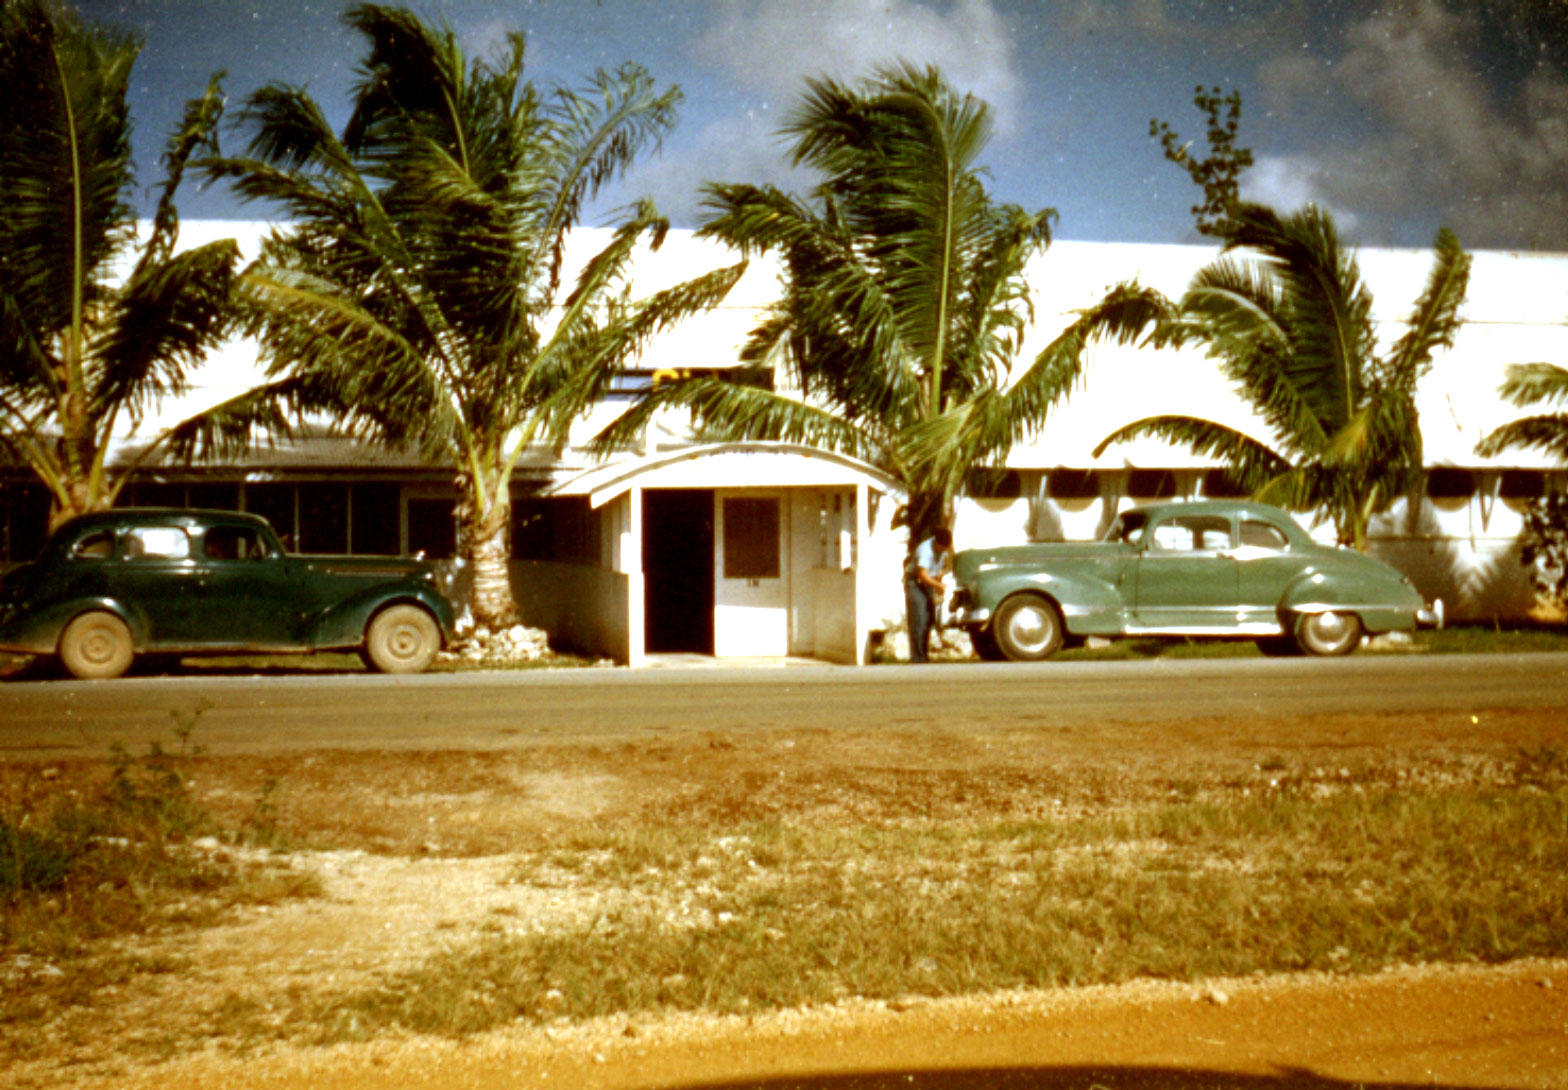 Ncs Guam Circa 1953 1955 Photos Courtesy Of Bob Breed